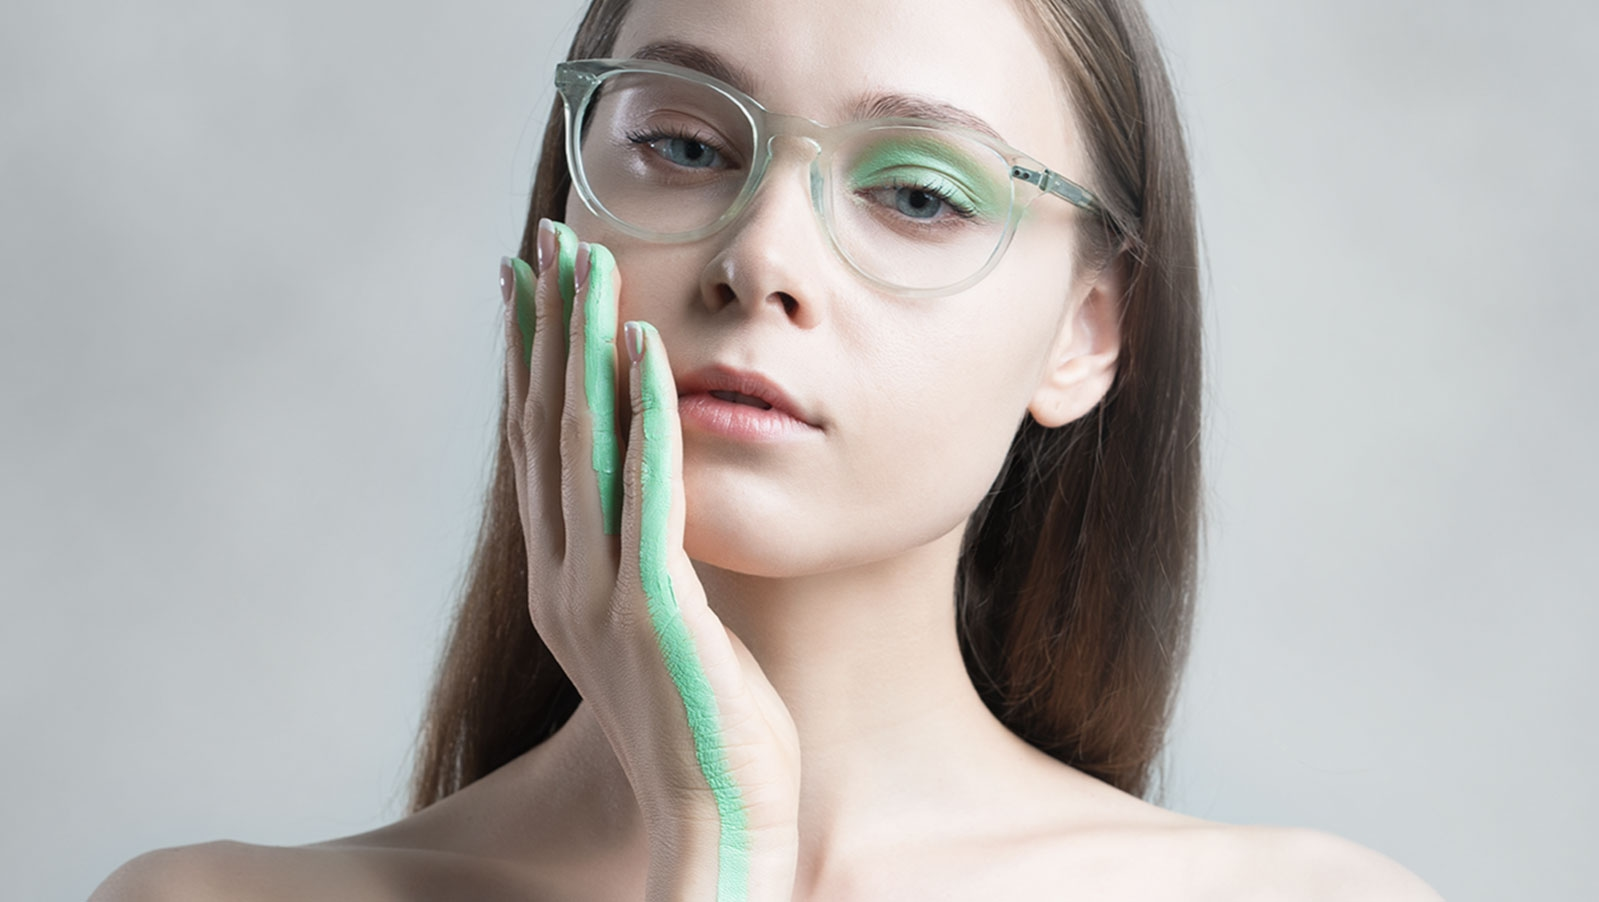 paint on model wearing clear sunglasses